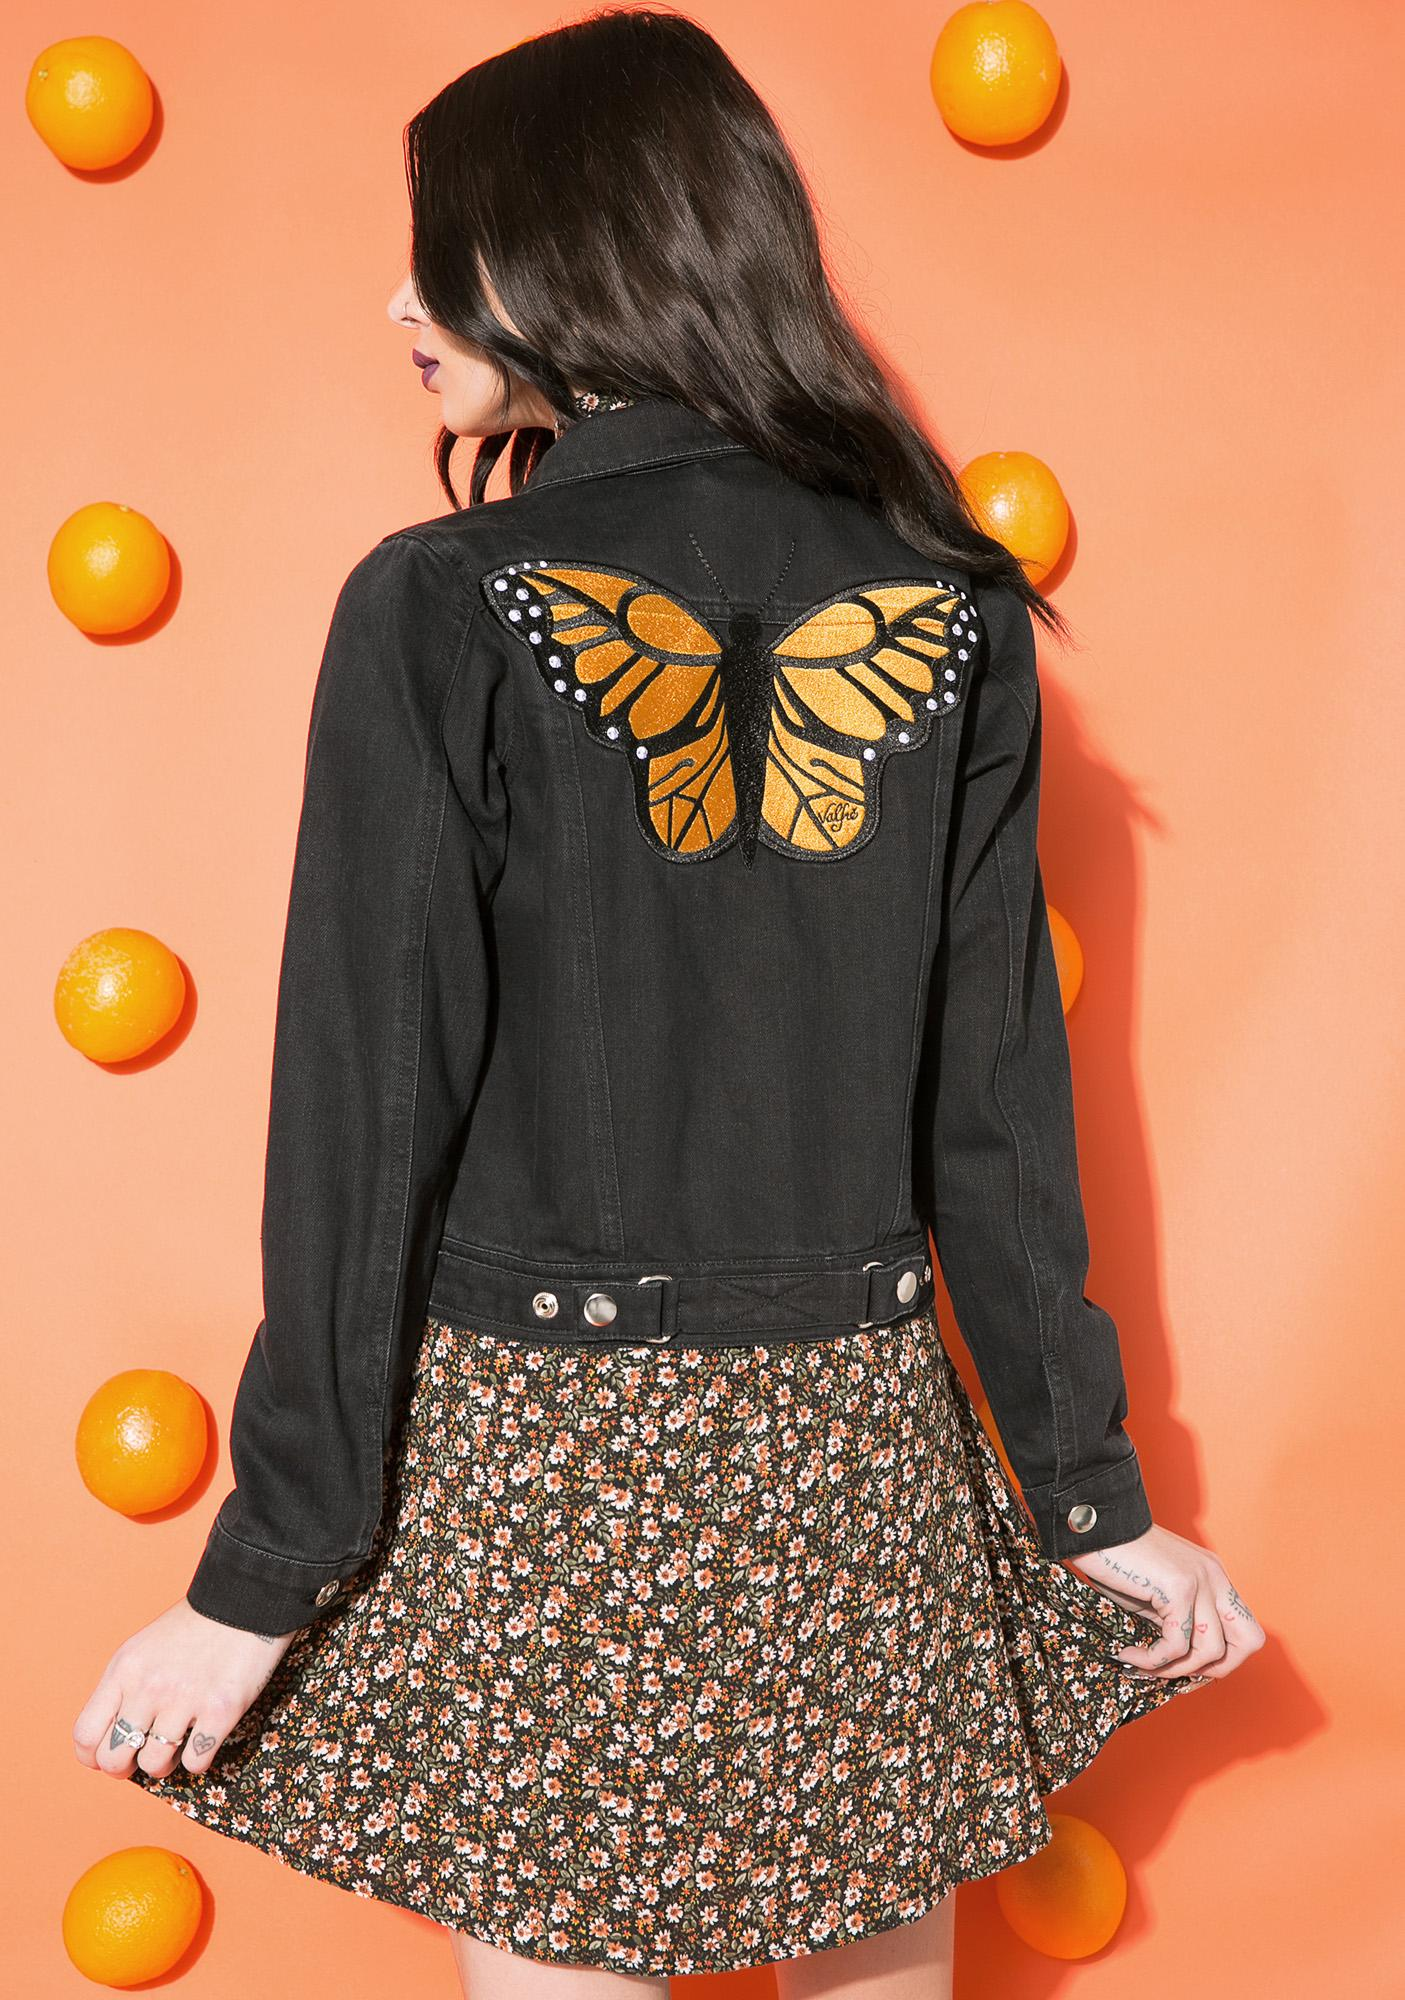 Valfré Mariposa Denim Jacket